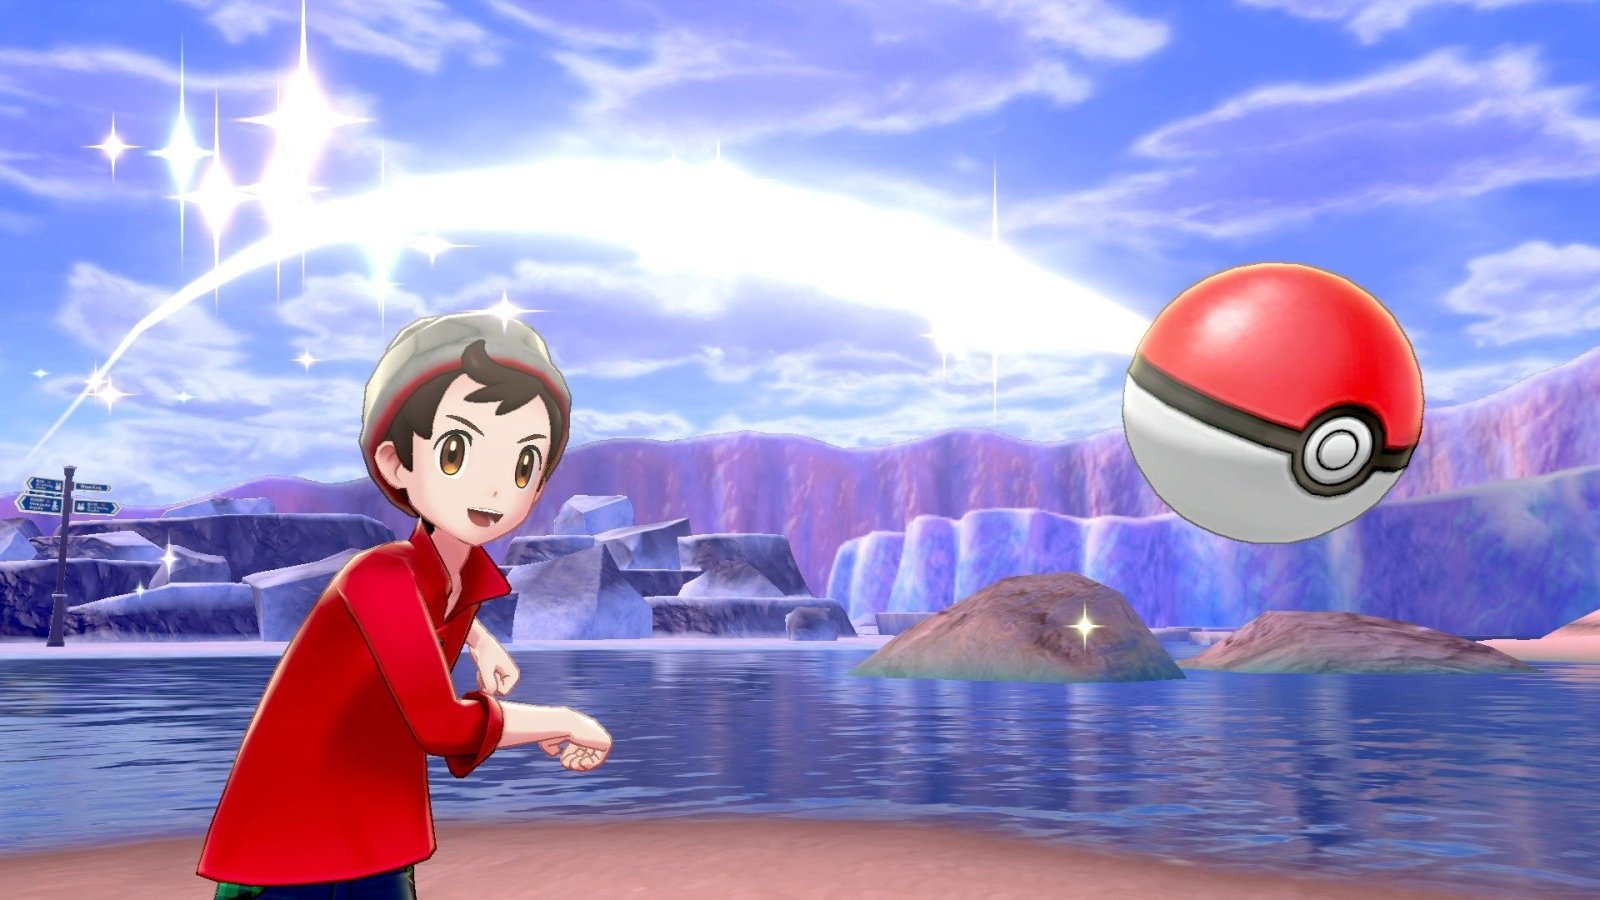 Game Freak Dev Responds To The Pokemon Sword And Shield Controversy